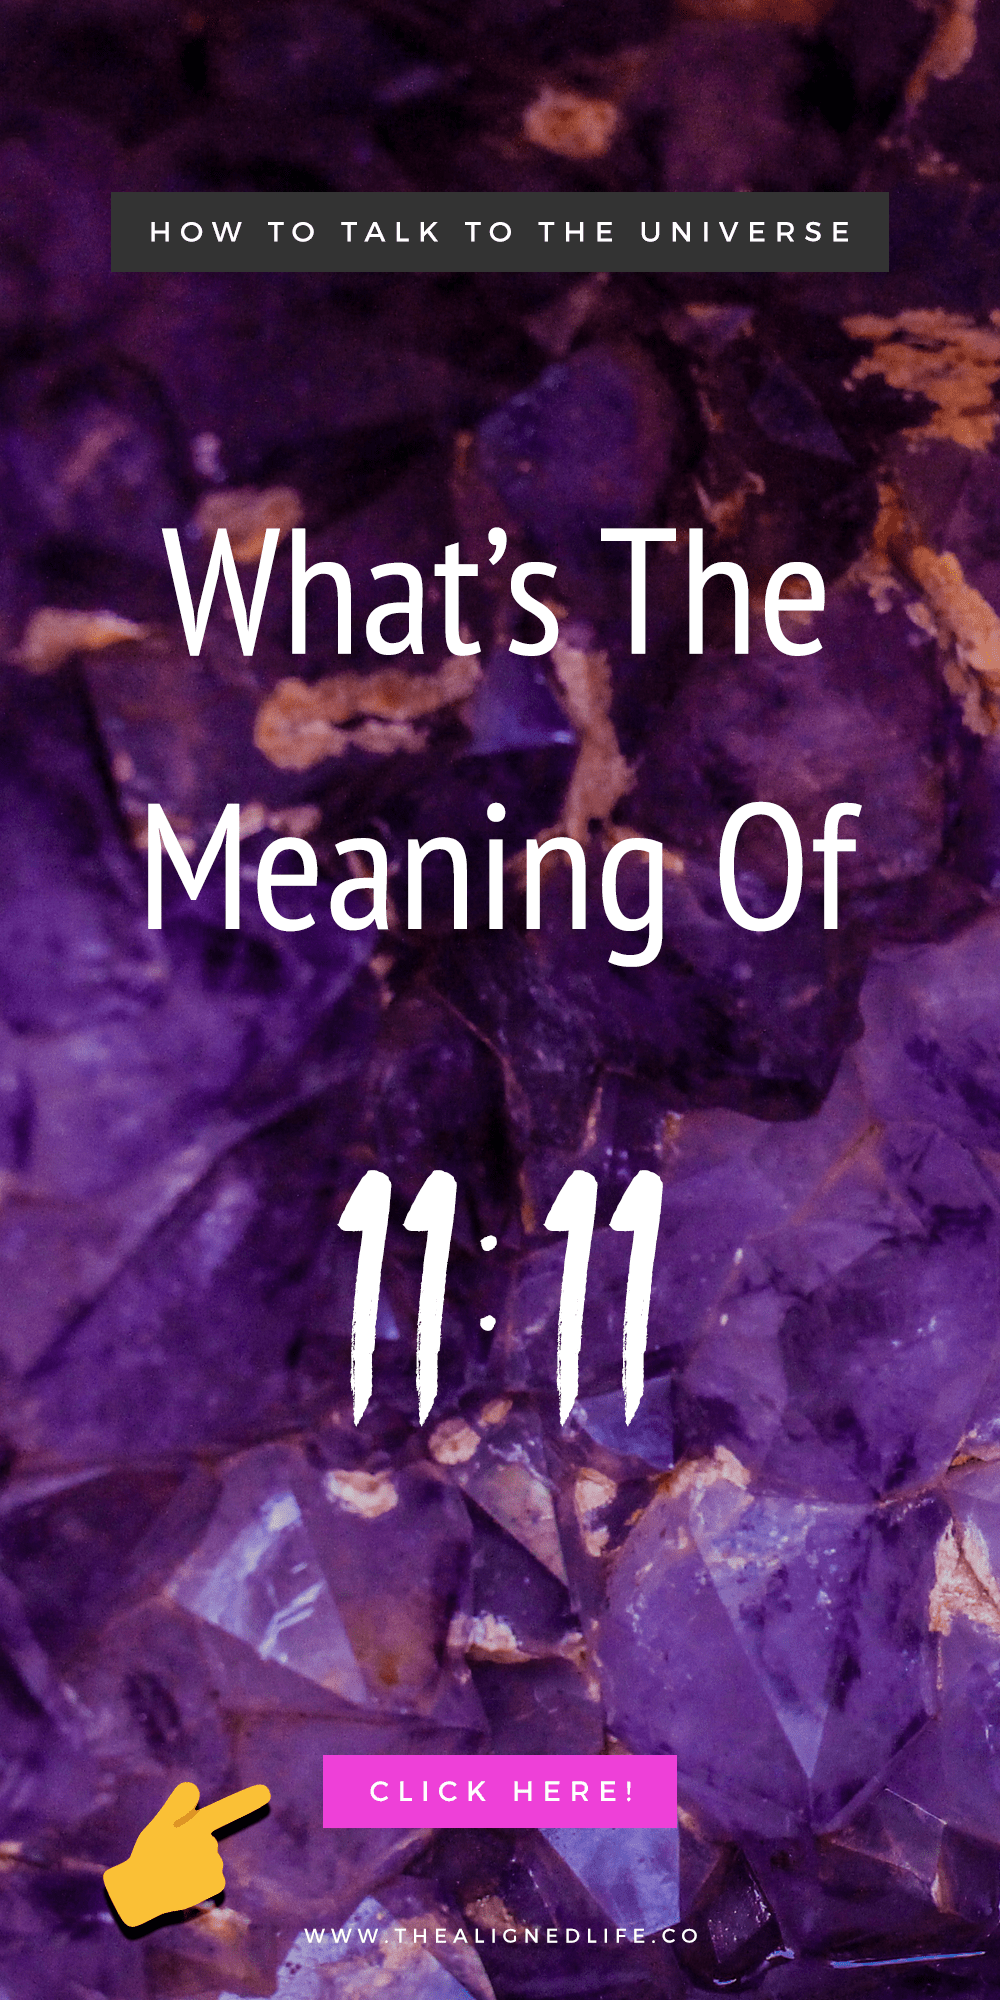 crystals with text that read What's The Meaning Of 1111?